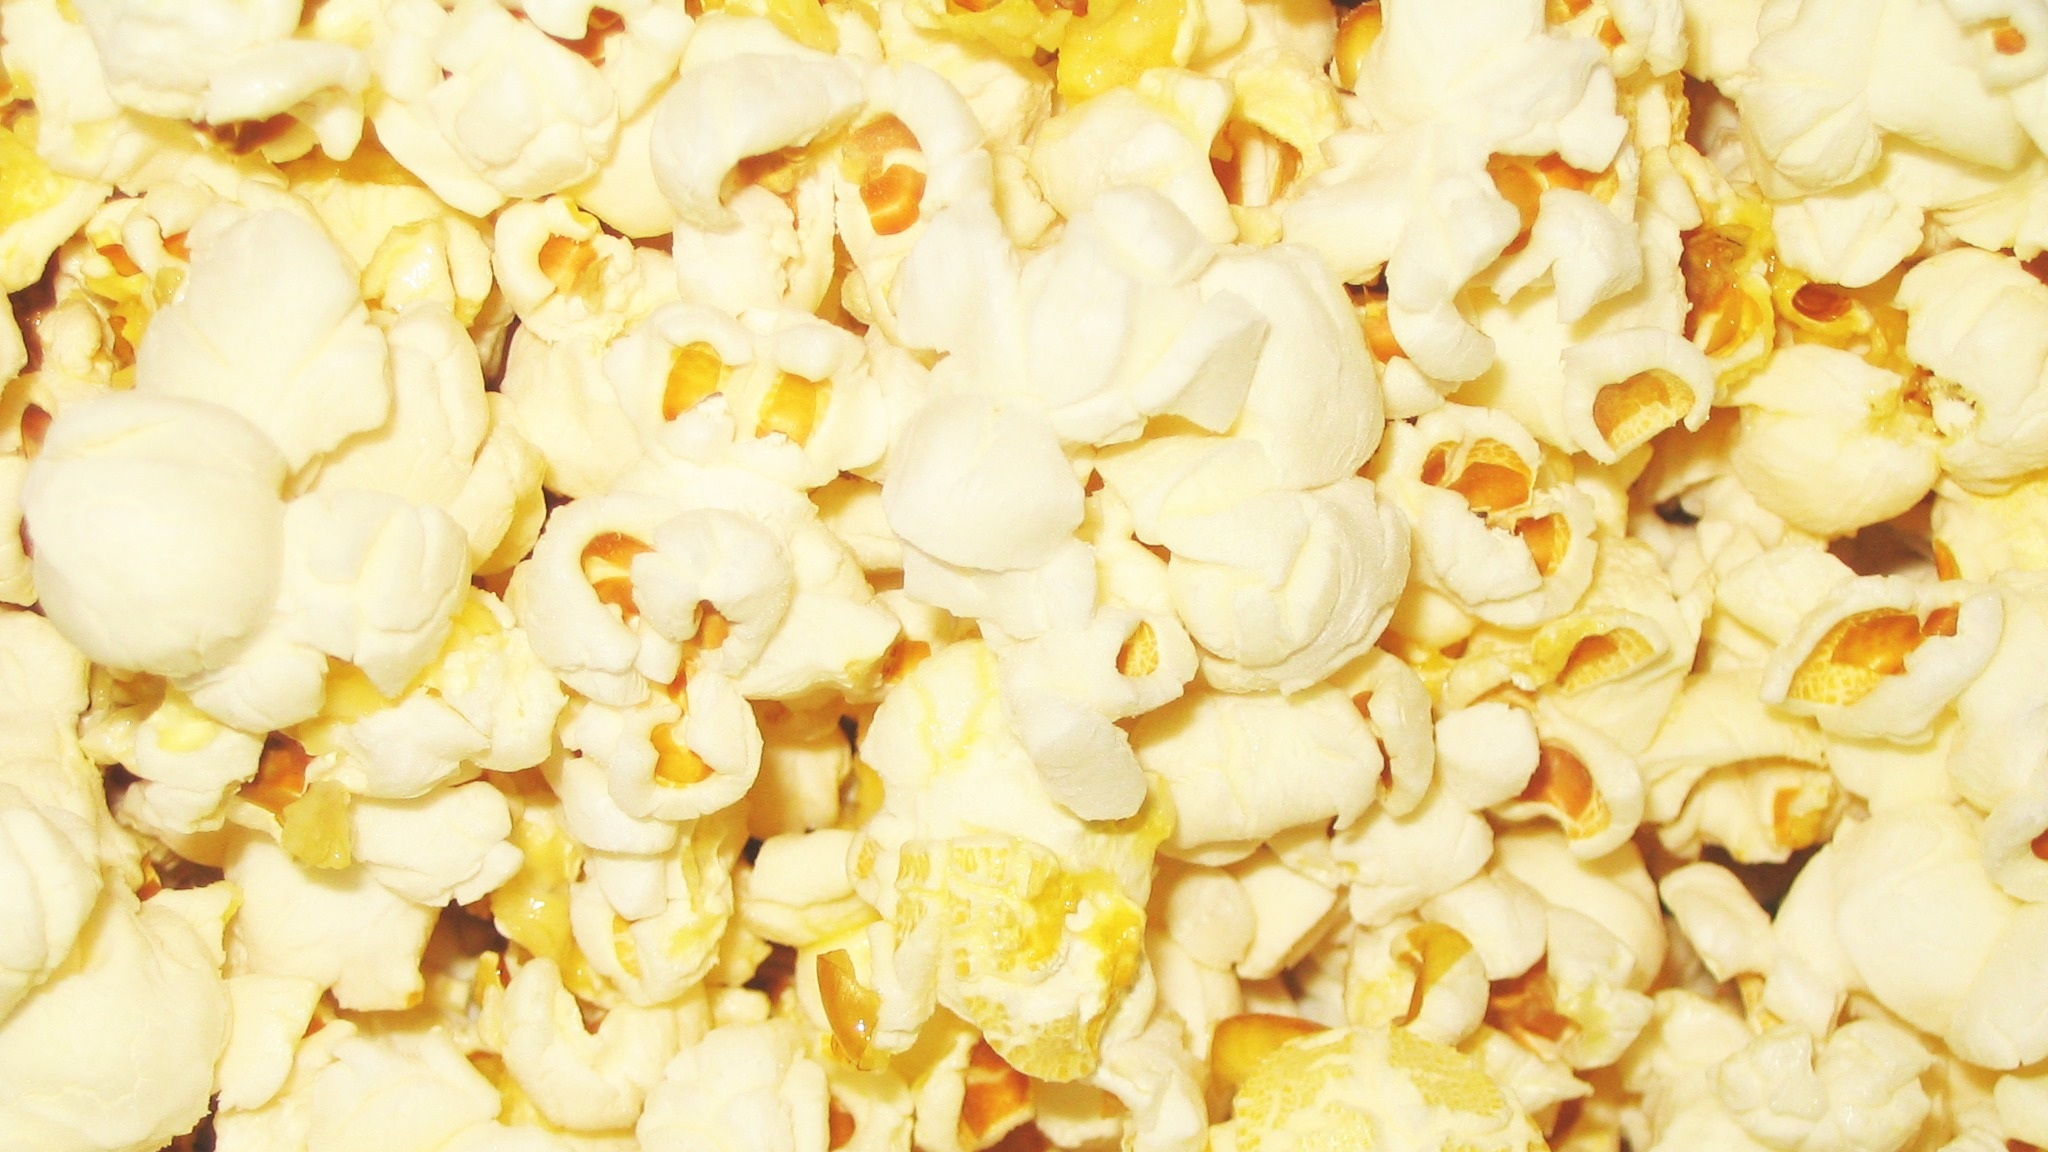 37 Popcorn HD Wallpapers Background Images 2048x1152